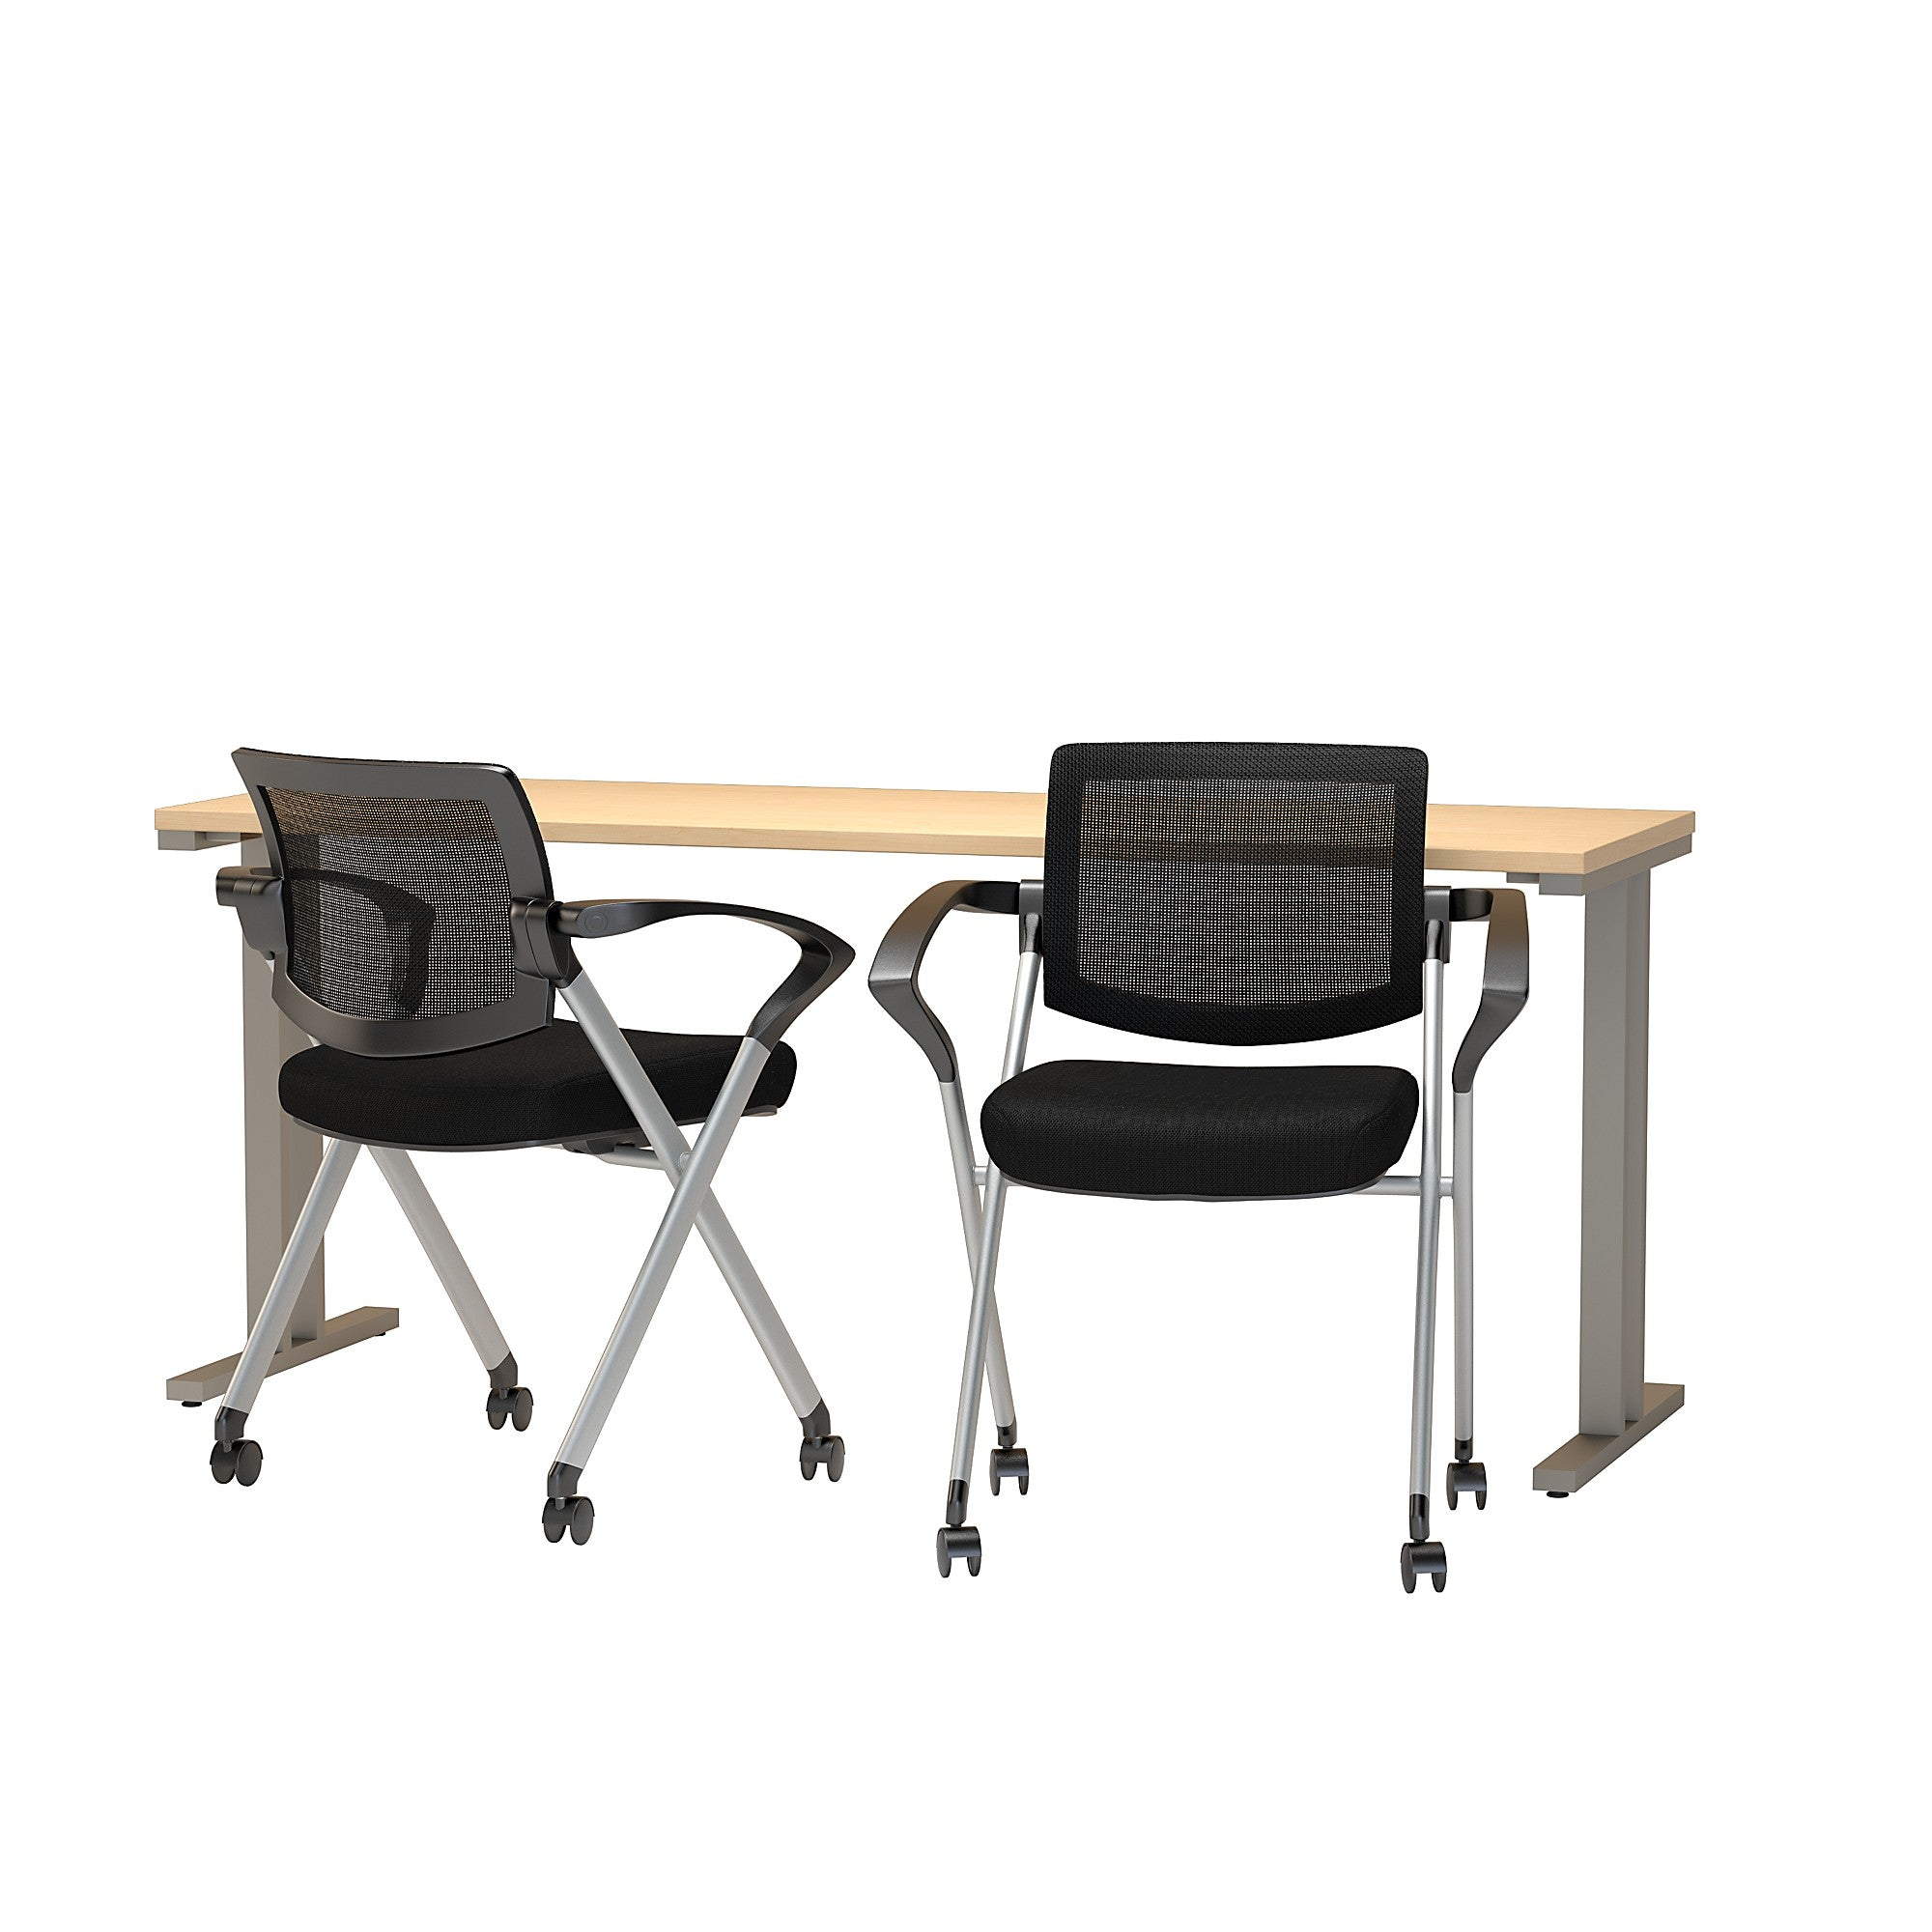 400 Series 72W x 24D Training Table with Mesh Back Folding Chairs